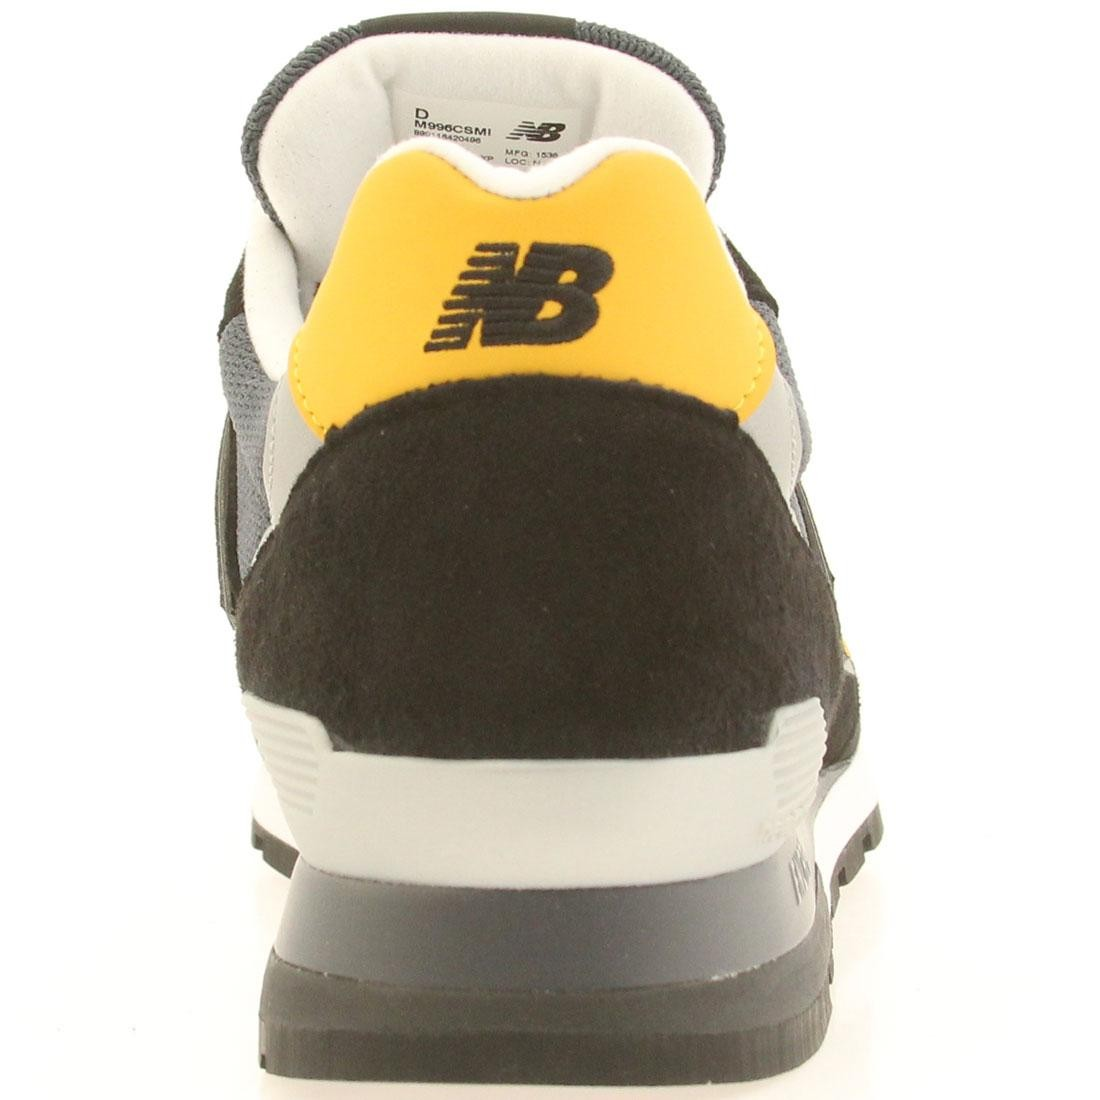 sports shoes 87c66 30255 New Balance Men 996 Connoisseur Ski M996CSMI - Made In USA (black   yellow    silver)